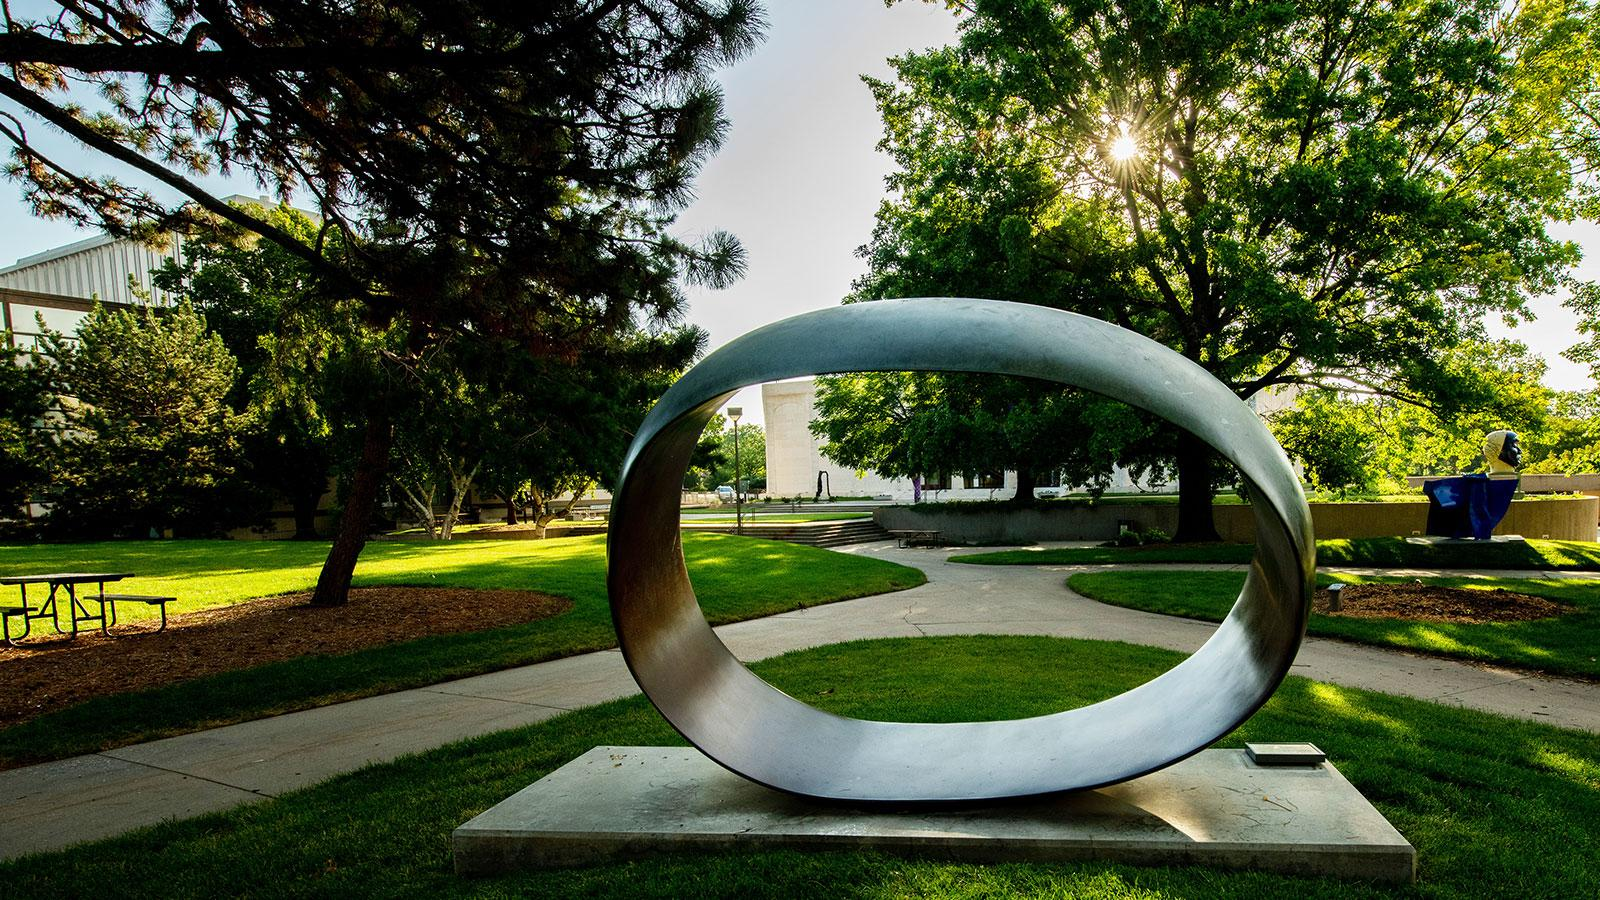 large outdoor sculpture in an oval shape with the sunrise shining through green trees